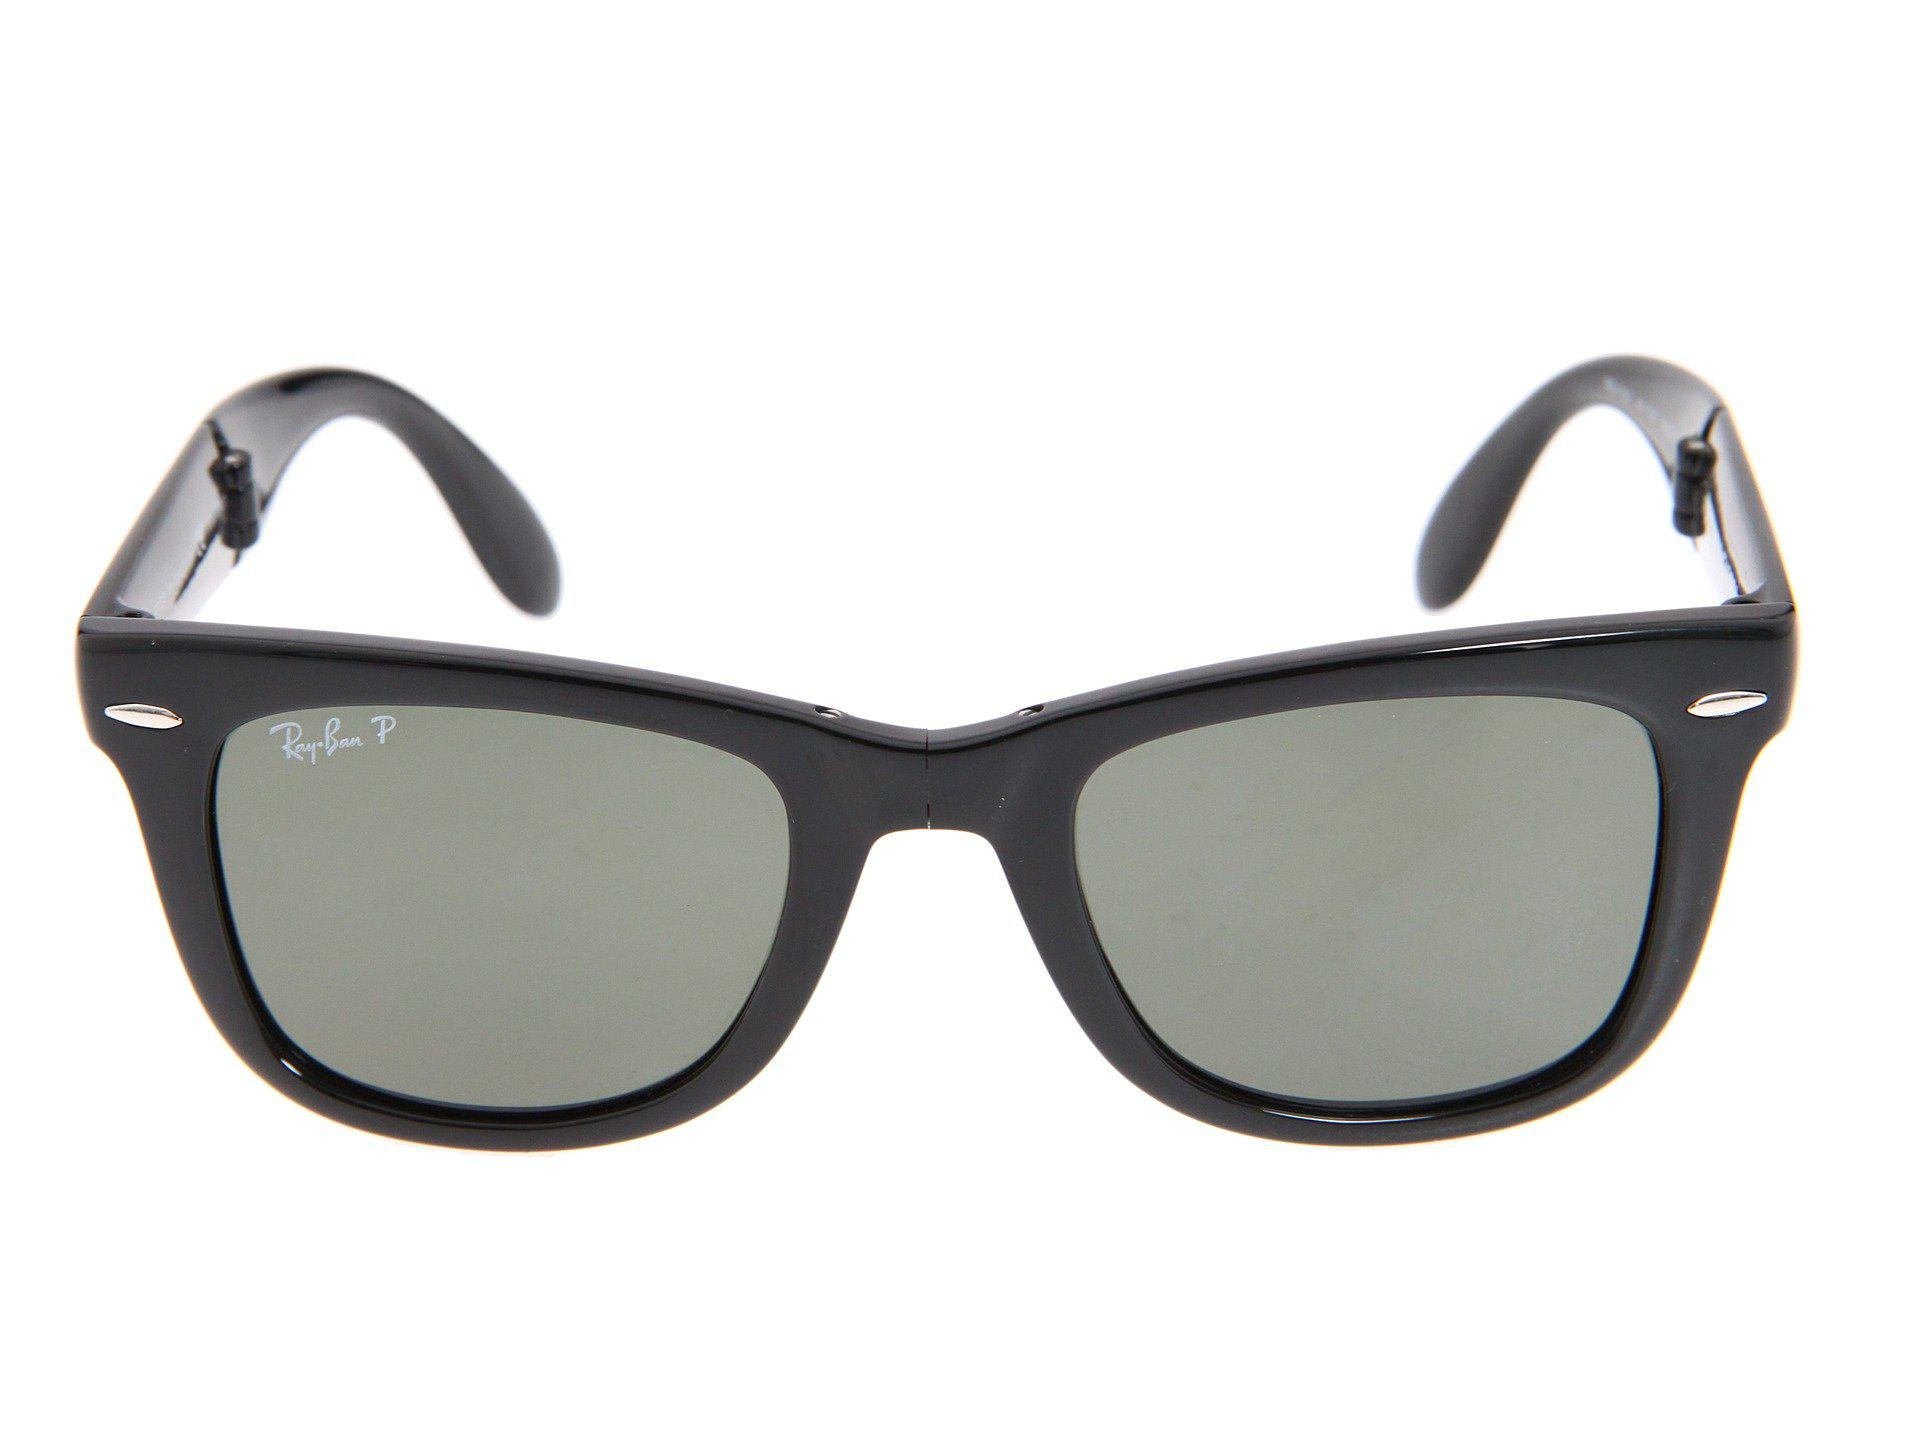 b489c0f352a Ray-Ban - Rb4105 Folding Wayfarer Polarized 50 Medium (black polarized Lens).  View fullscreen